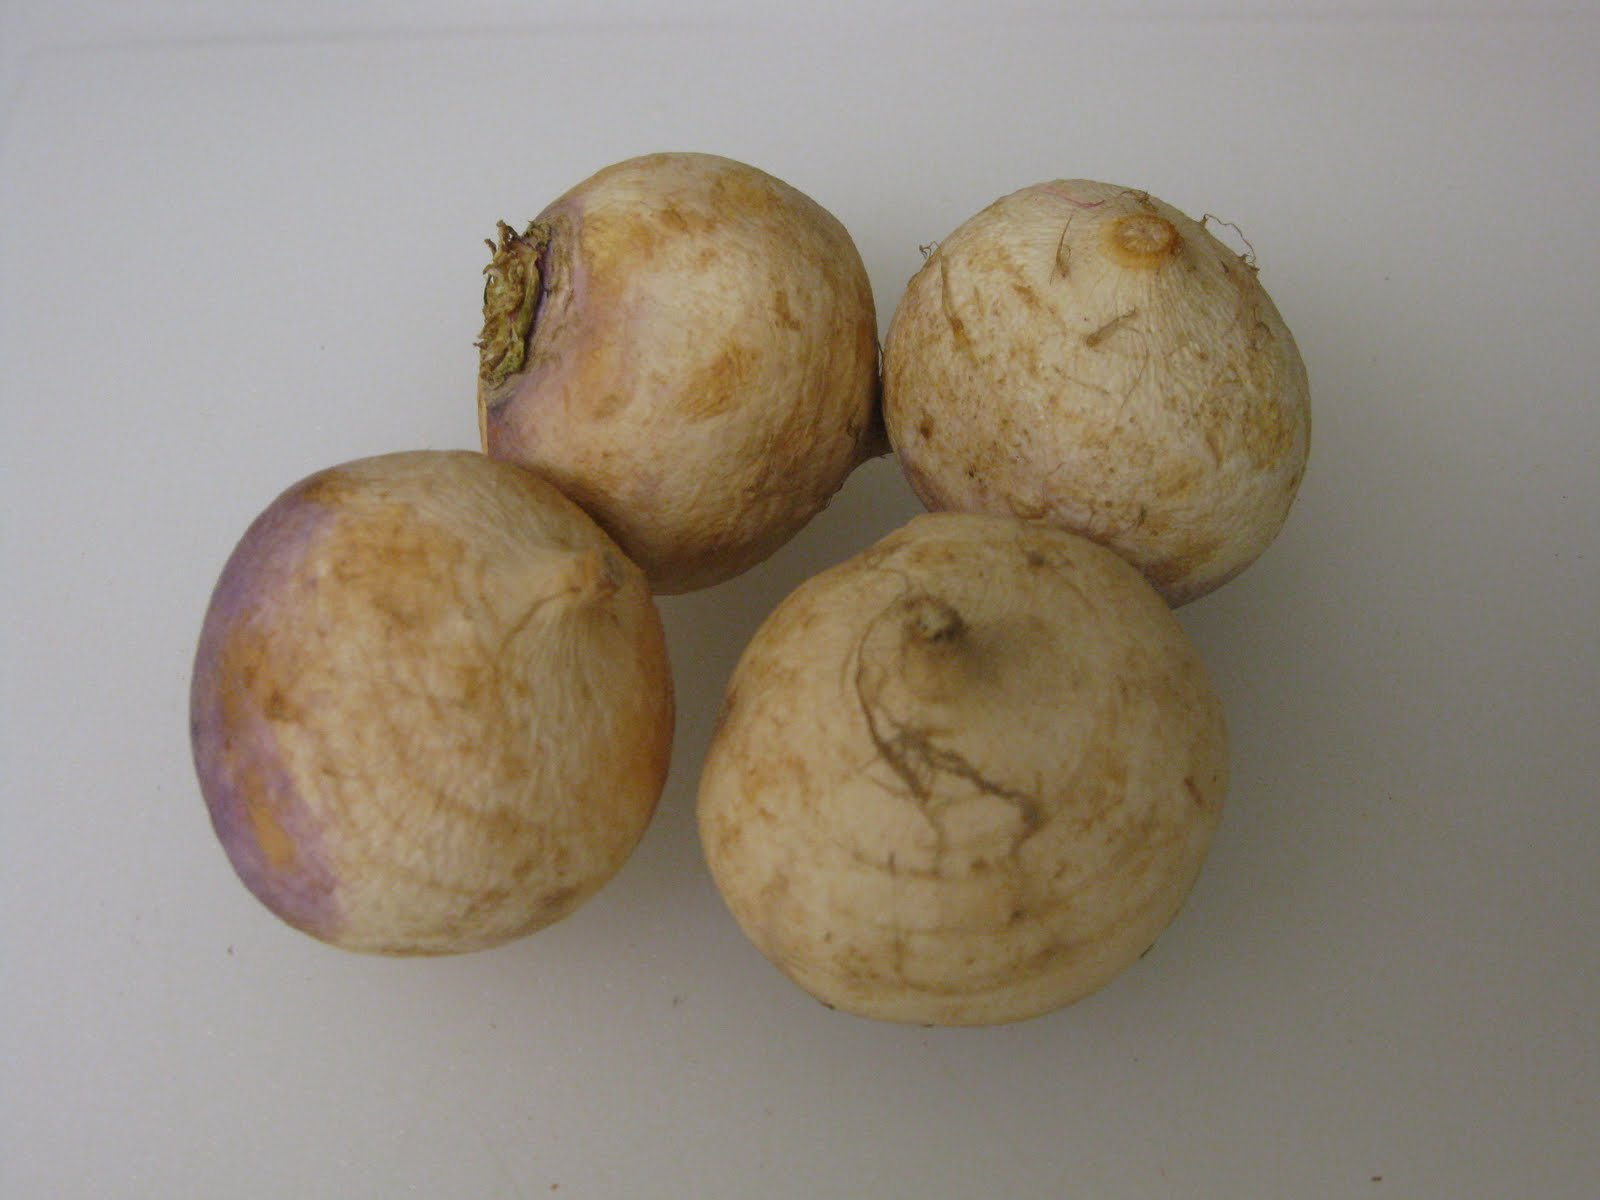 Peel the turnips and dice them into half inch pieces.